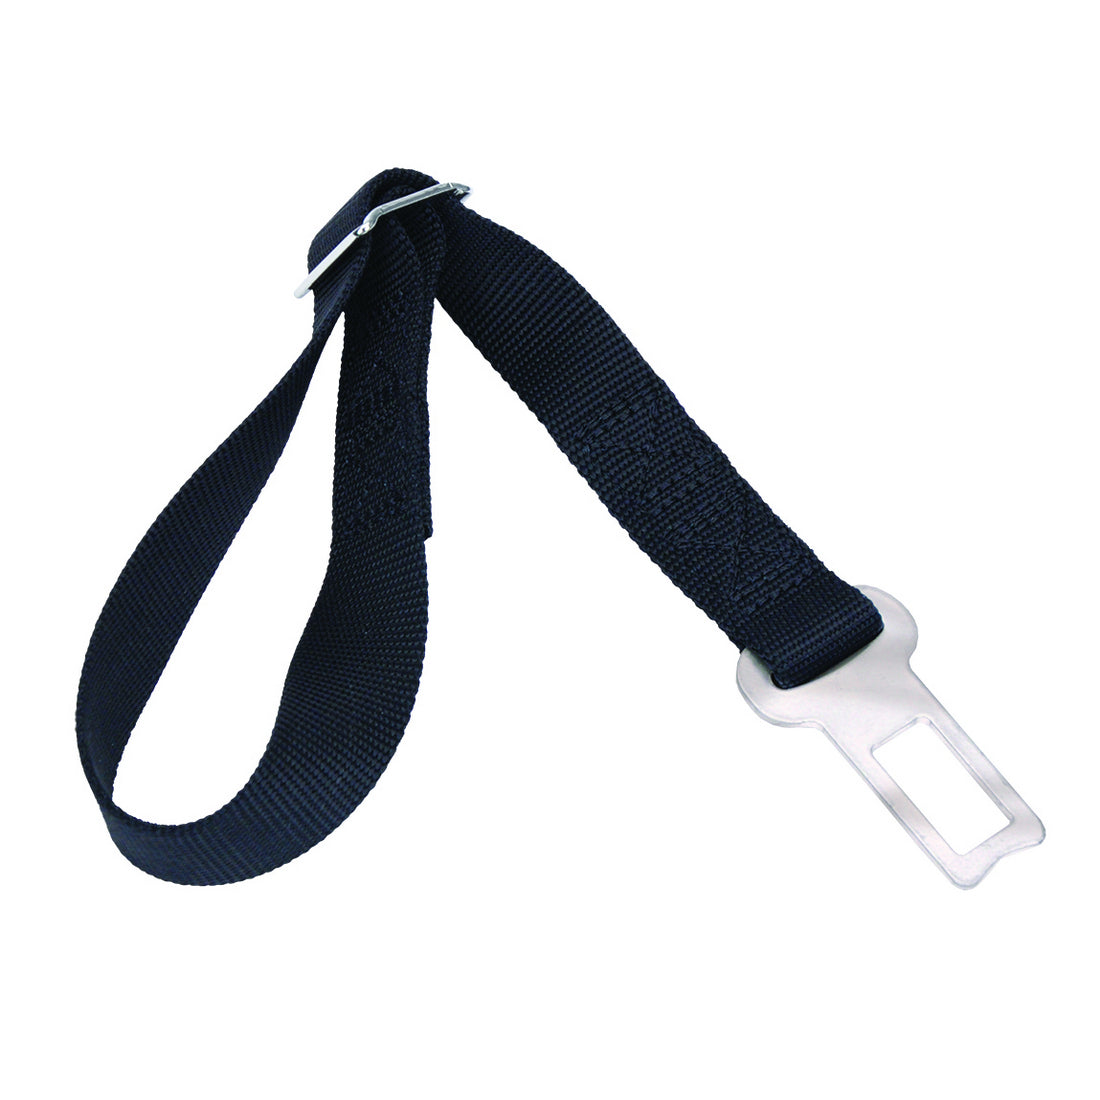 Coastal Easy Rider Seat Belt Accessory